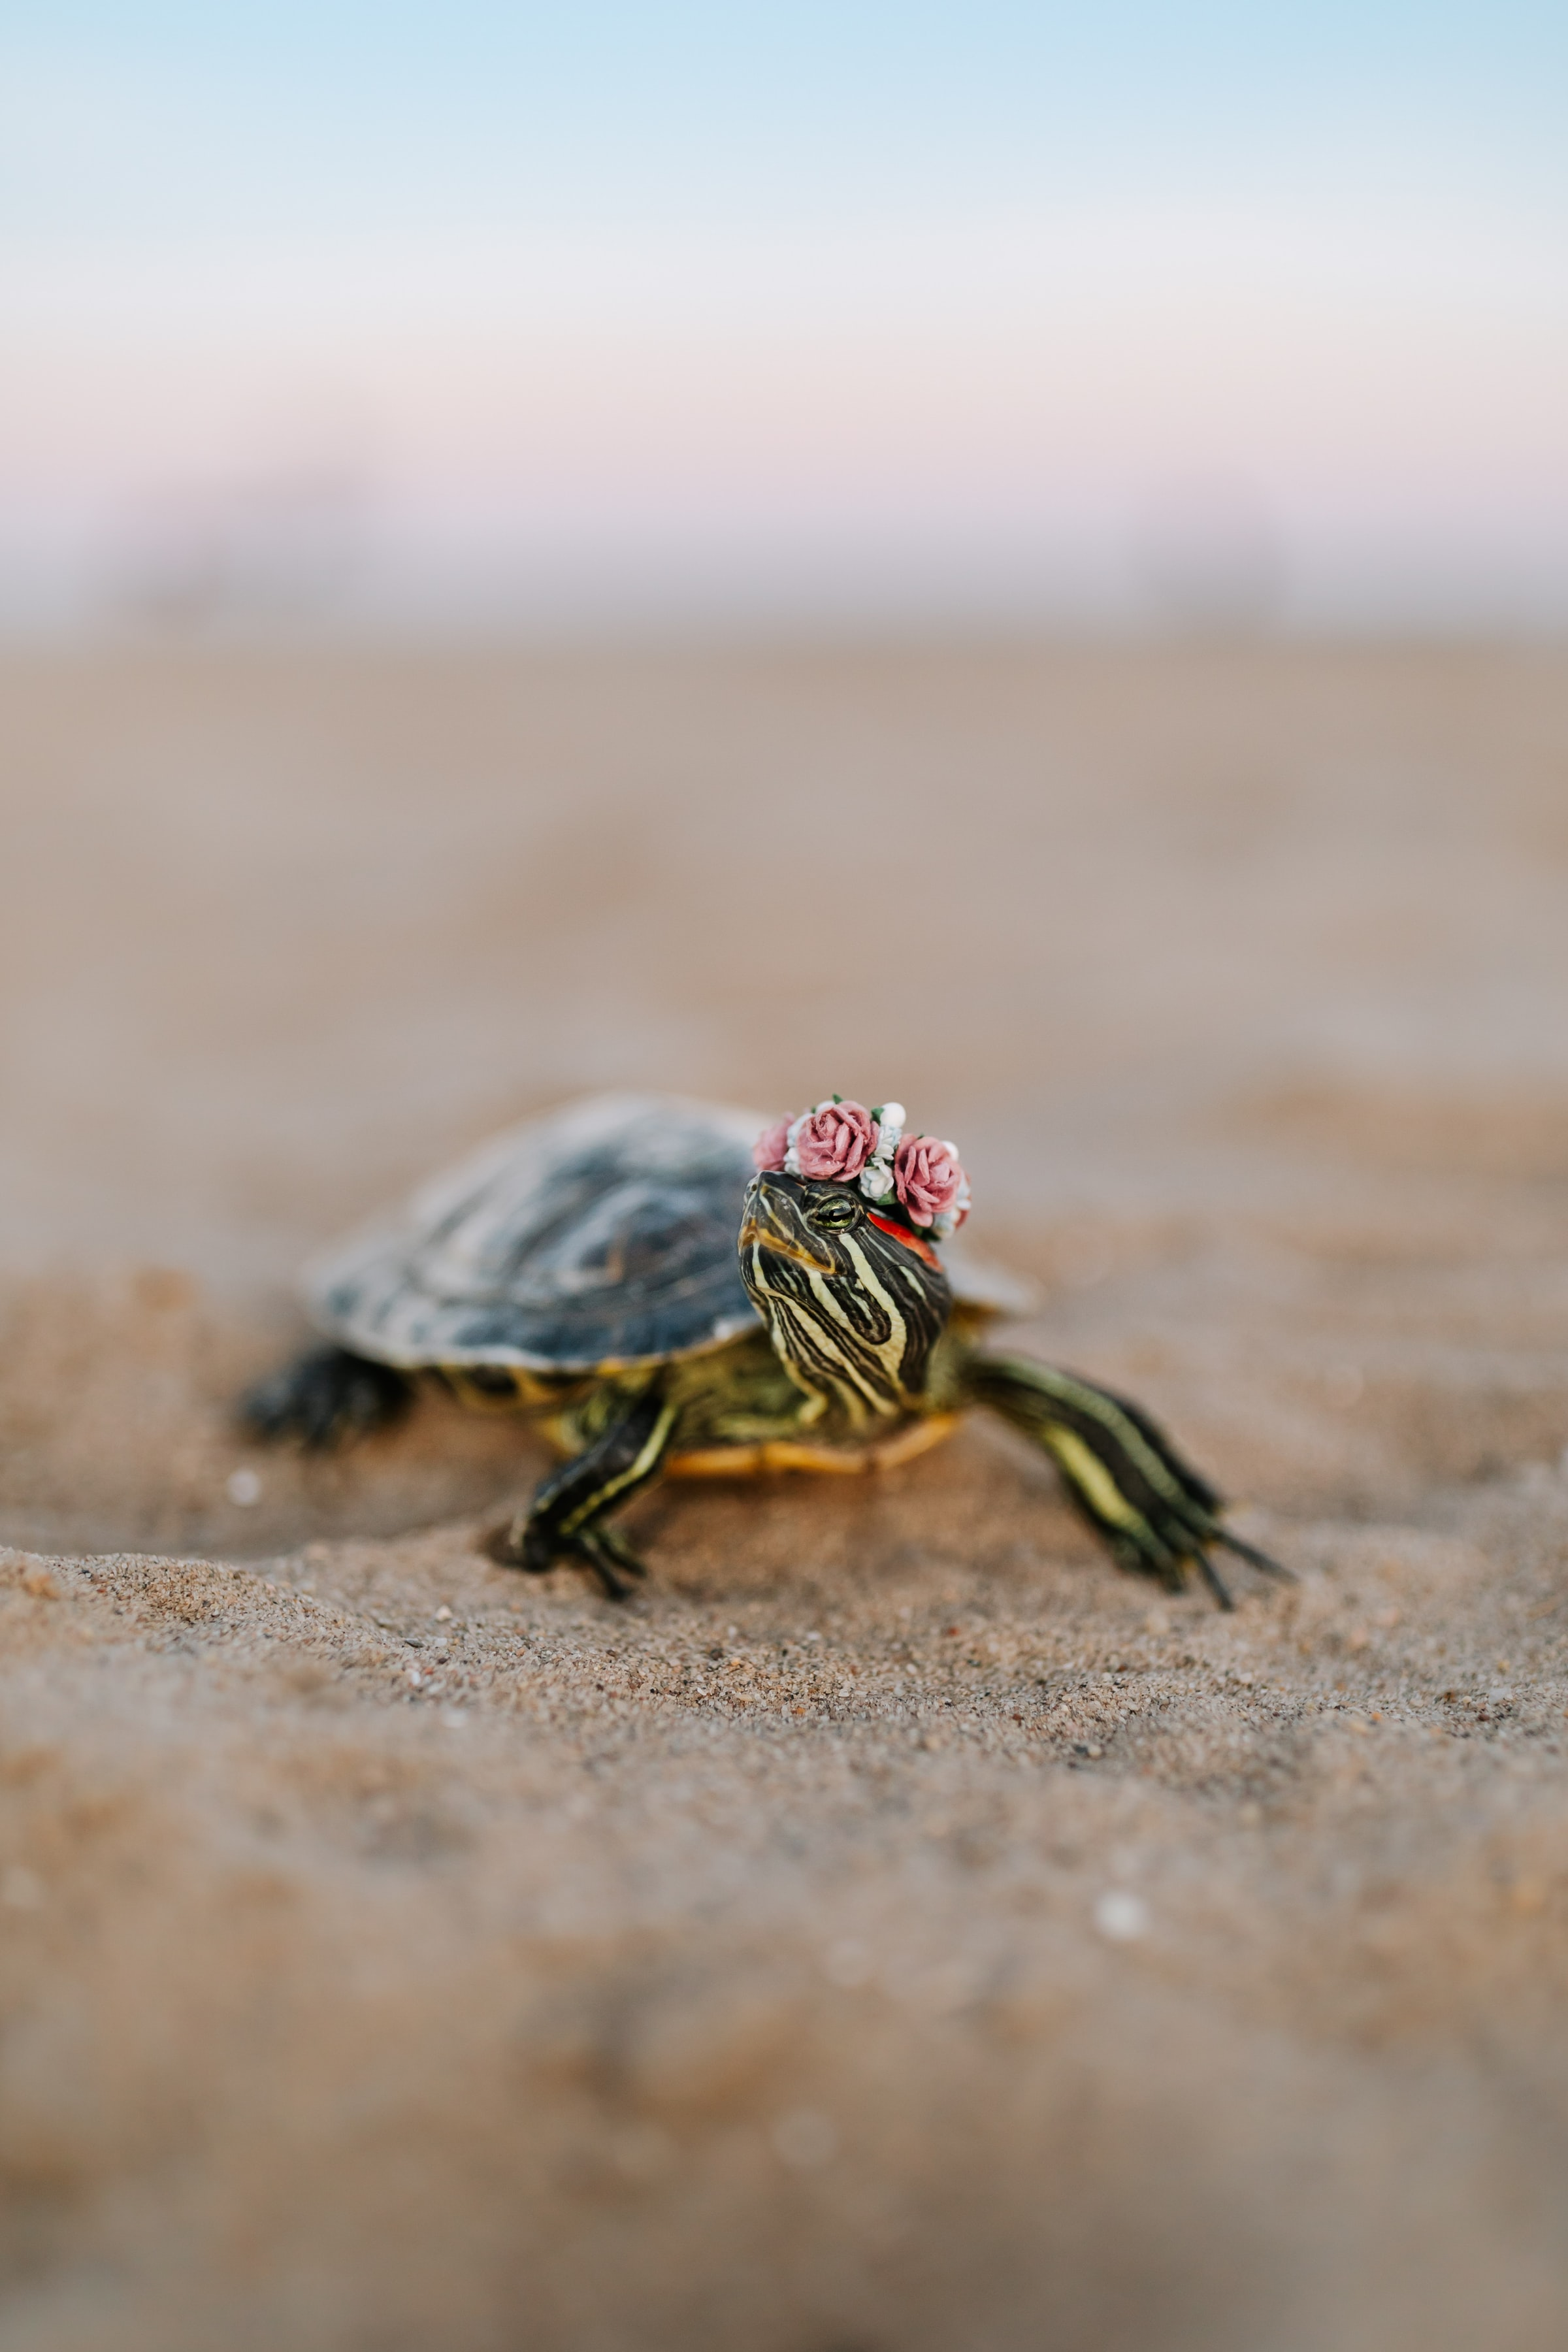 121326 download wallpaper Animals, Turtle, Carapace, Shell, Sand, Animal screensavers and pictures for free